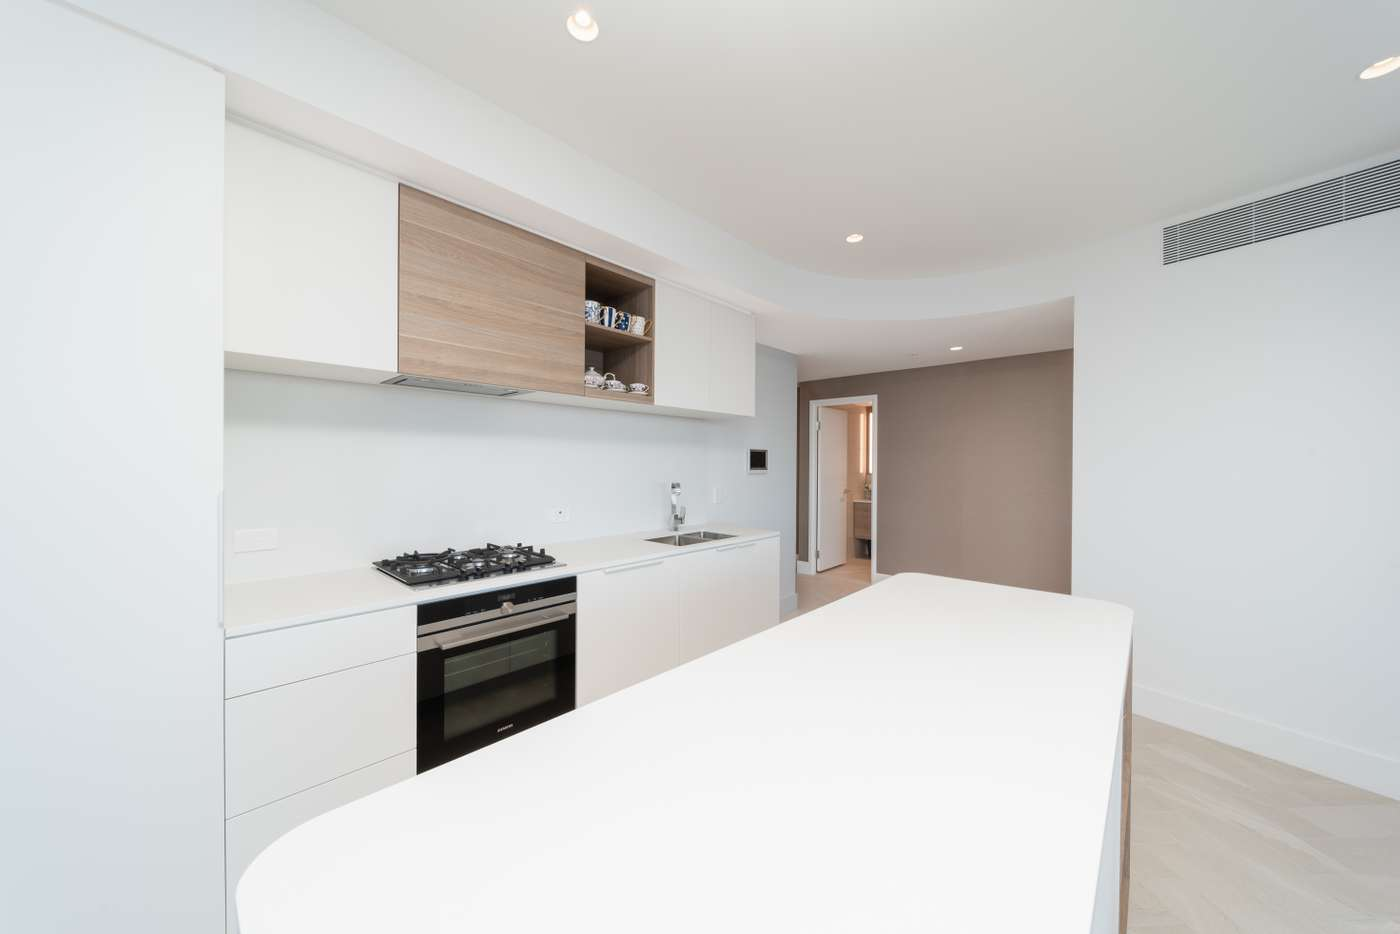 Fifth view of Homely apartment listing, 1101/11 Barrack Square, Perth WA 6000